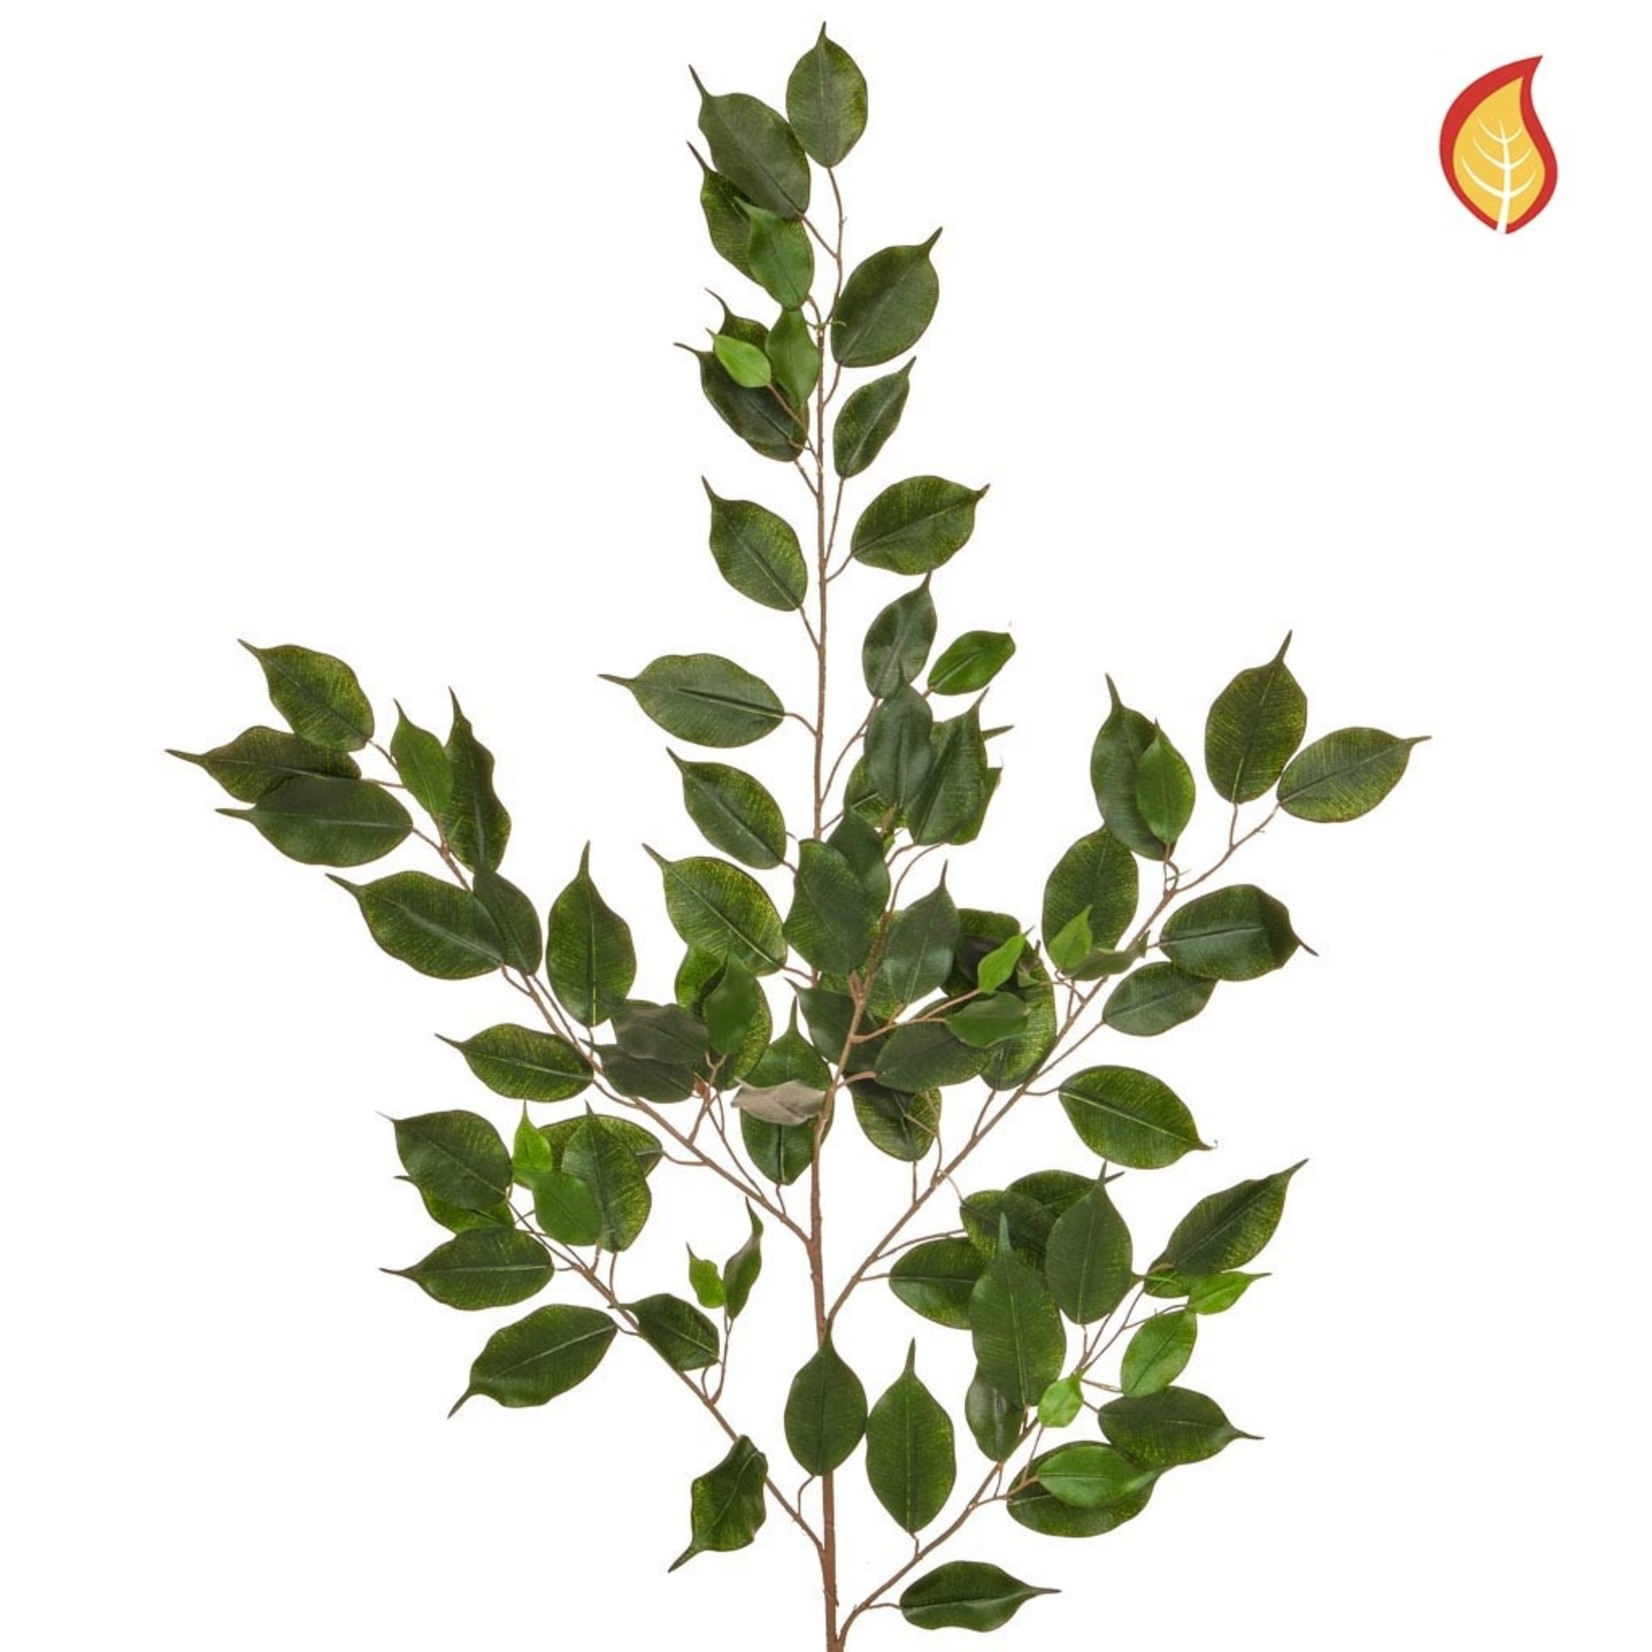 Foliage Ficus Exotica Grn 101lvs 100cm - Fire Rated